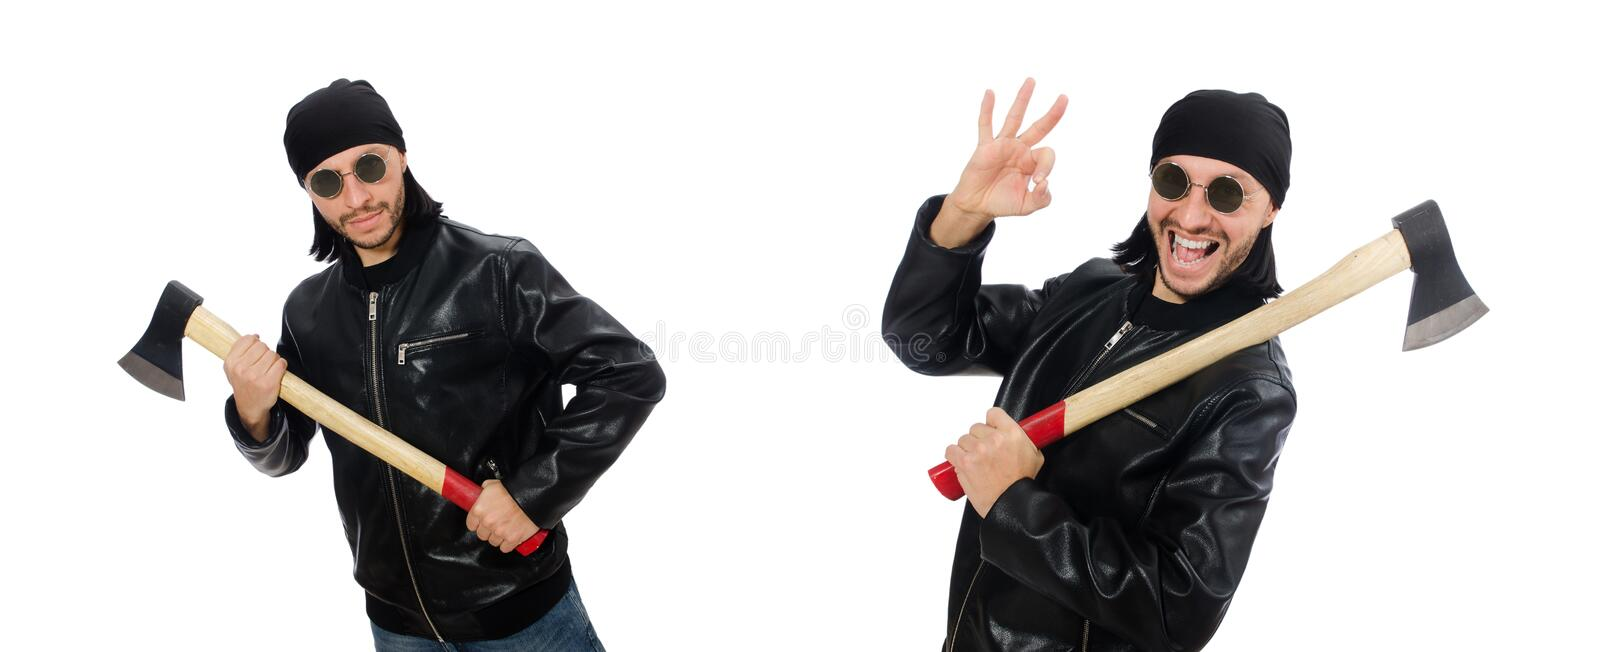 Angry man with axe isolated on white royalty free stock image